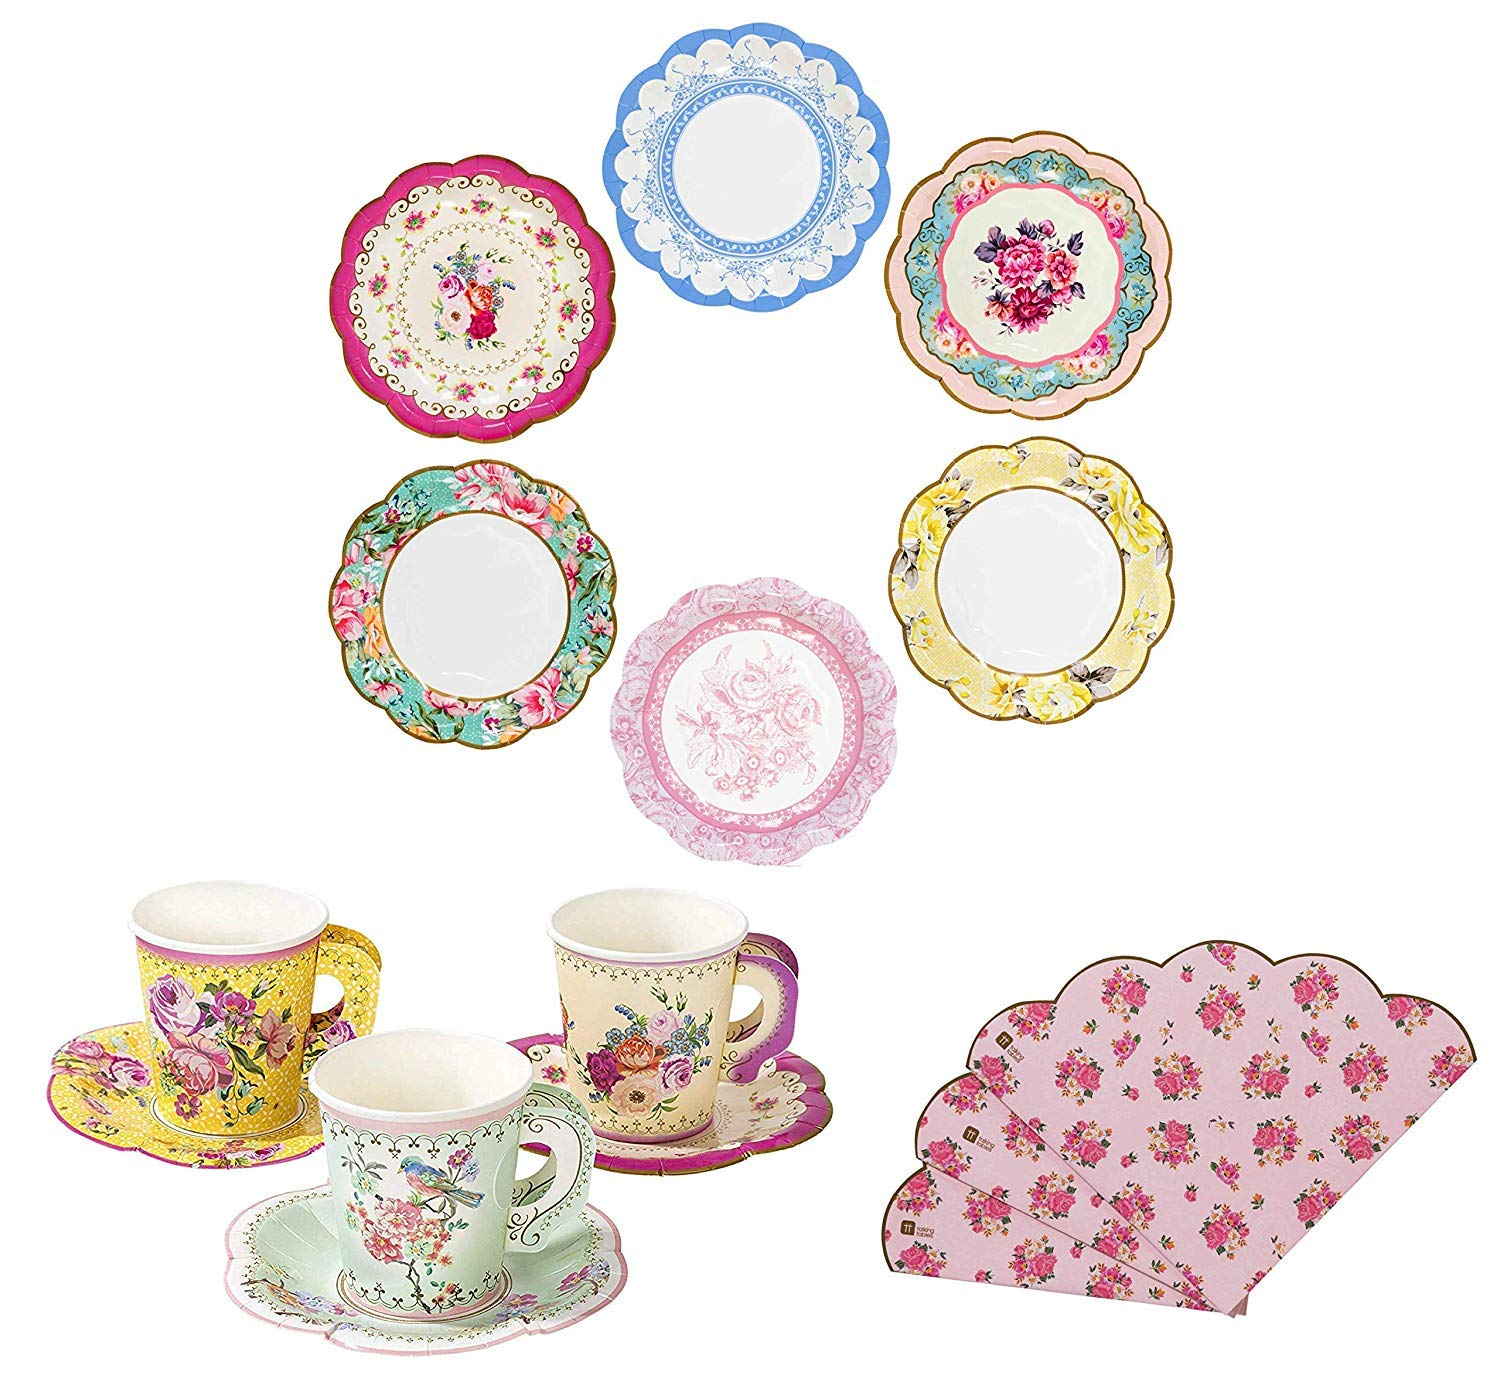 Talking Tables Vintage Floral Tea Party Supplies | Scalloped Paper Plates, Napkins, Tea Cups and Saucer Sets | Also Great for Wedding Parties, Bridal Shower, Baby Shower and Birthday Party by Talking Tables (Image #1)